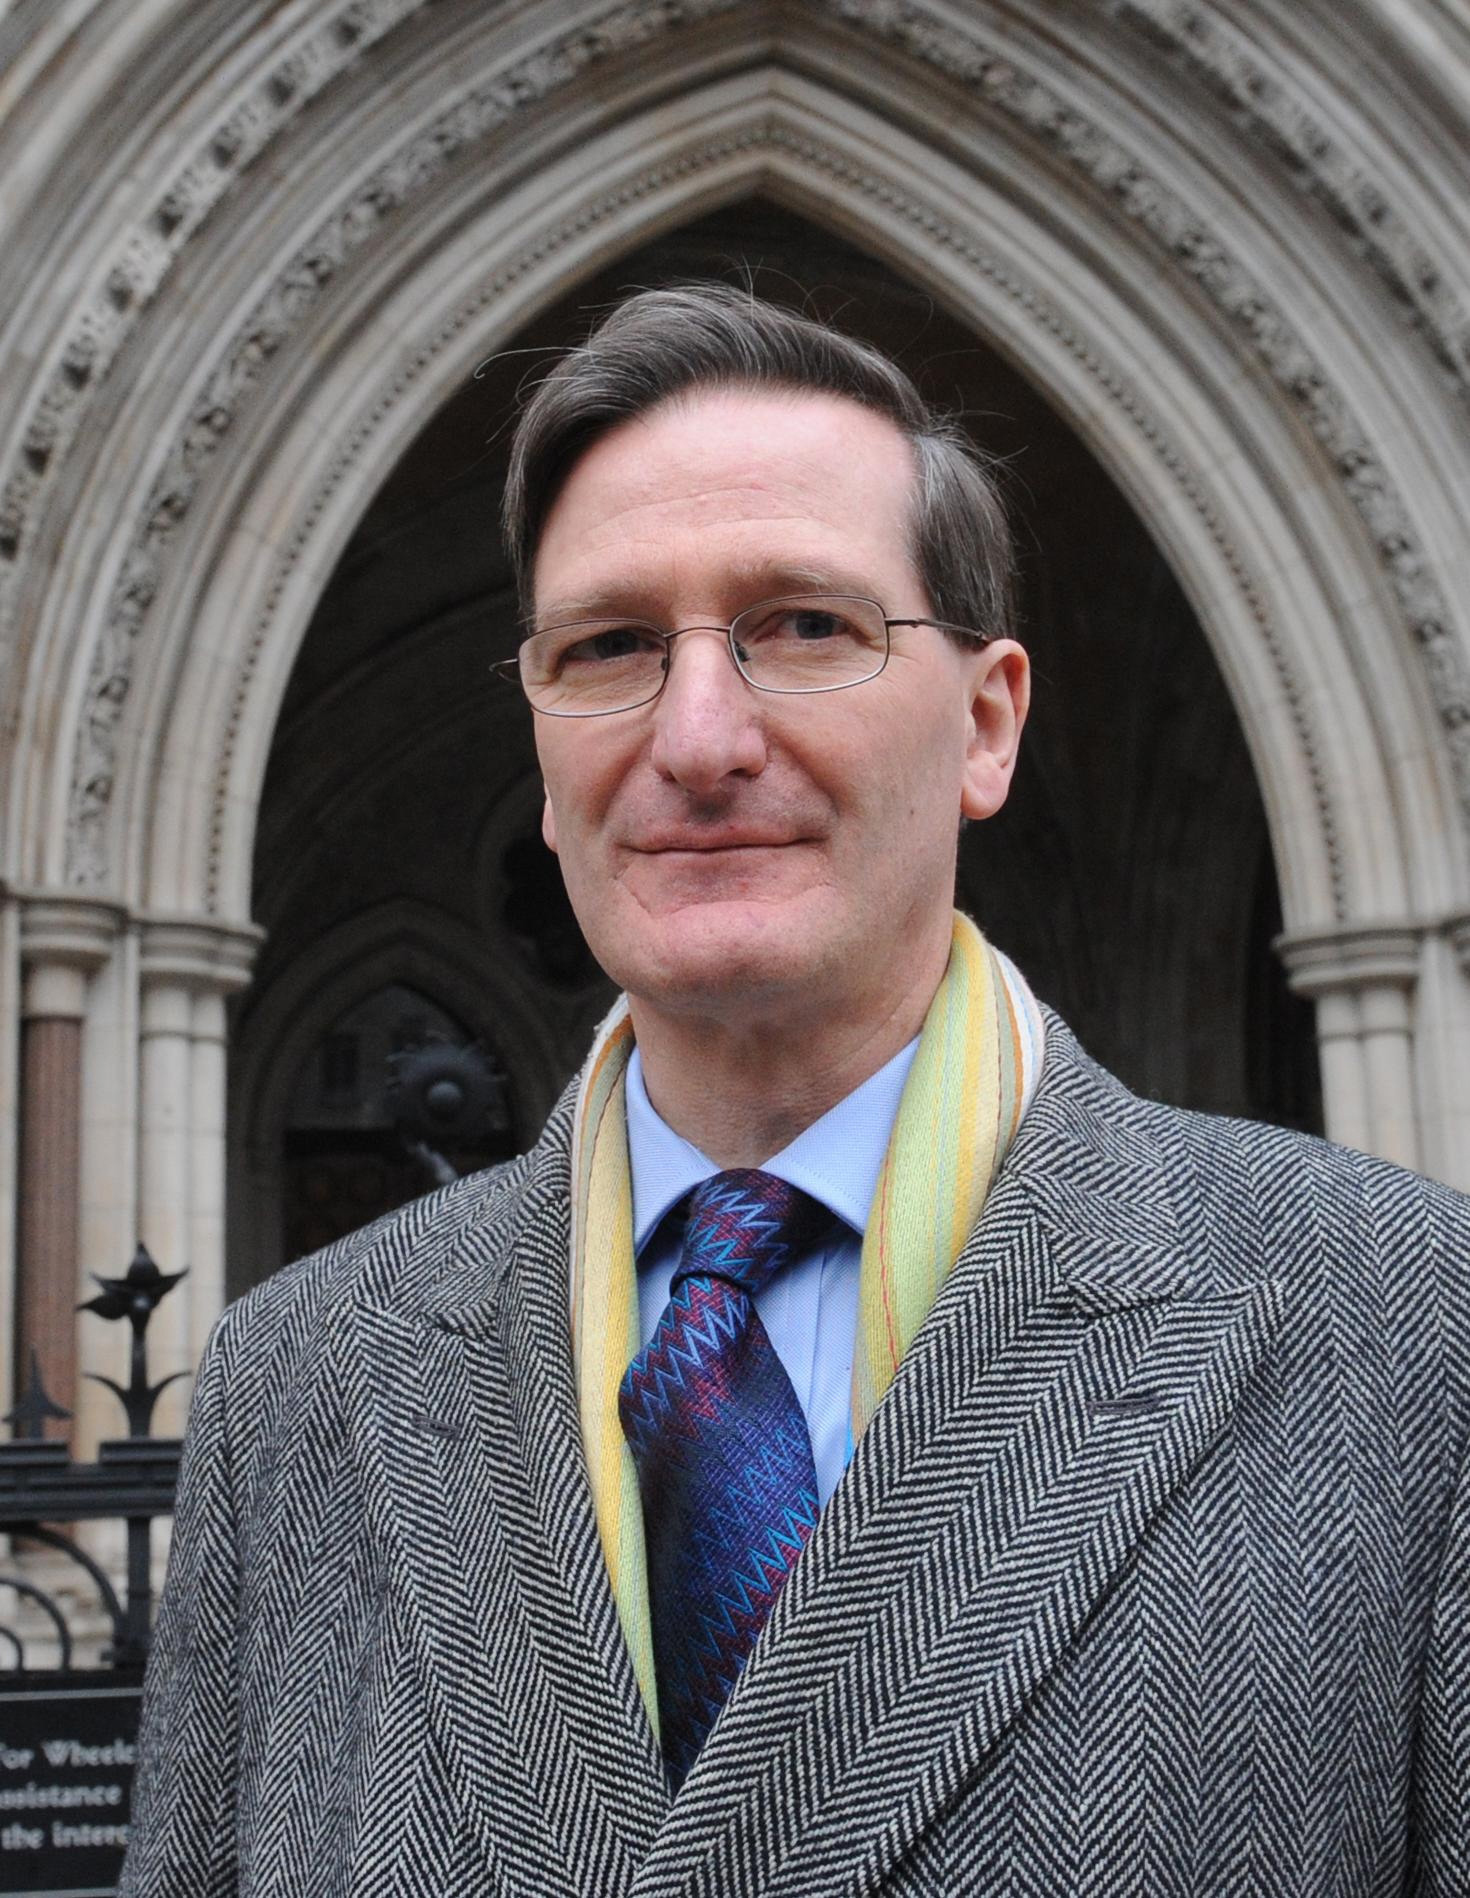 Dominic Grieve has been dubbed the Grand Old Duke of York